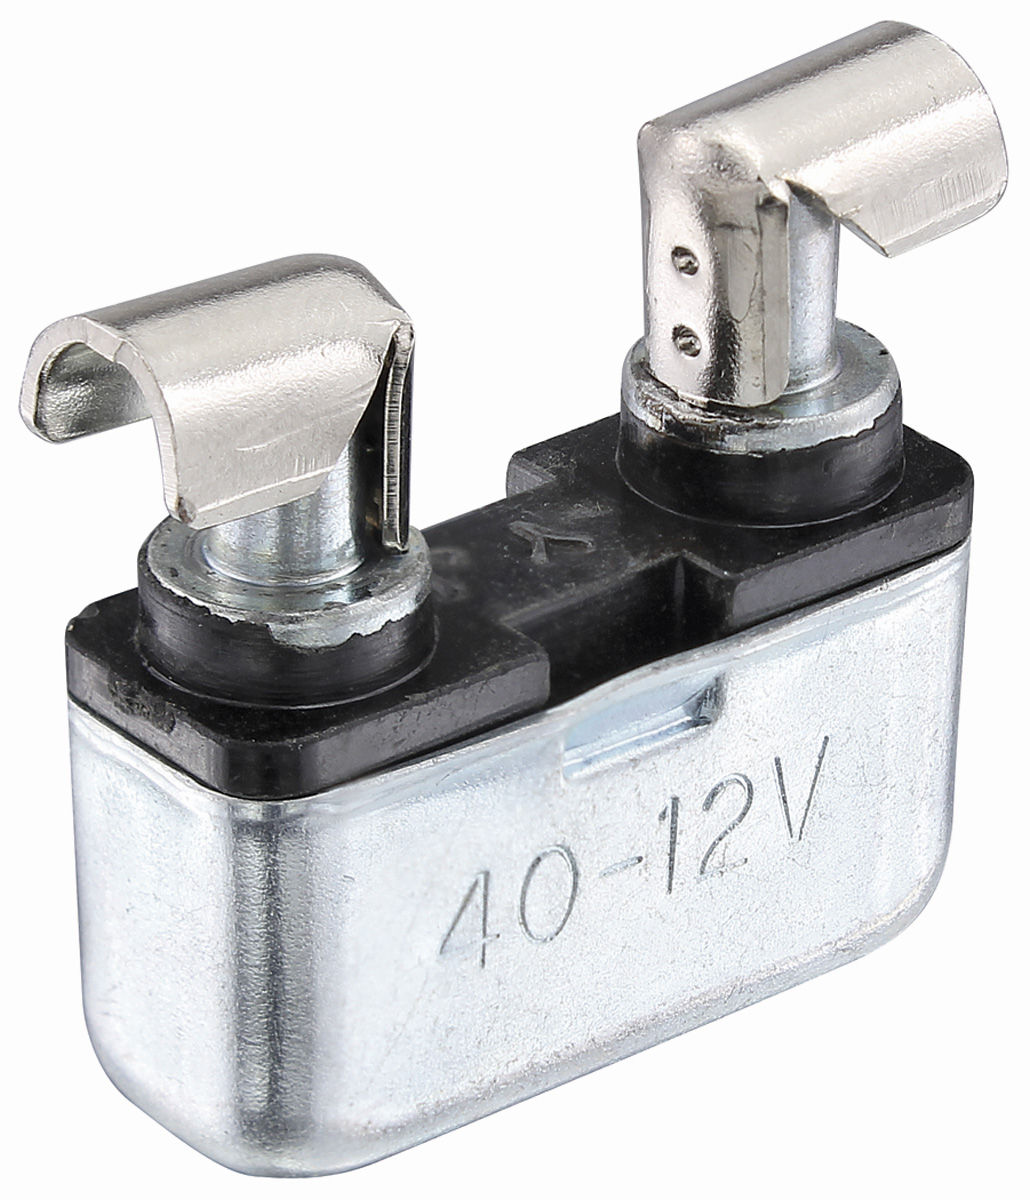 medium resolution of 1972 1978 eldorado power accessory circuit breaker 40 amp fuse block mounted